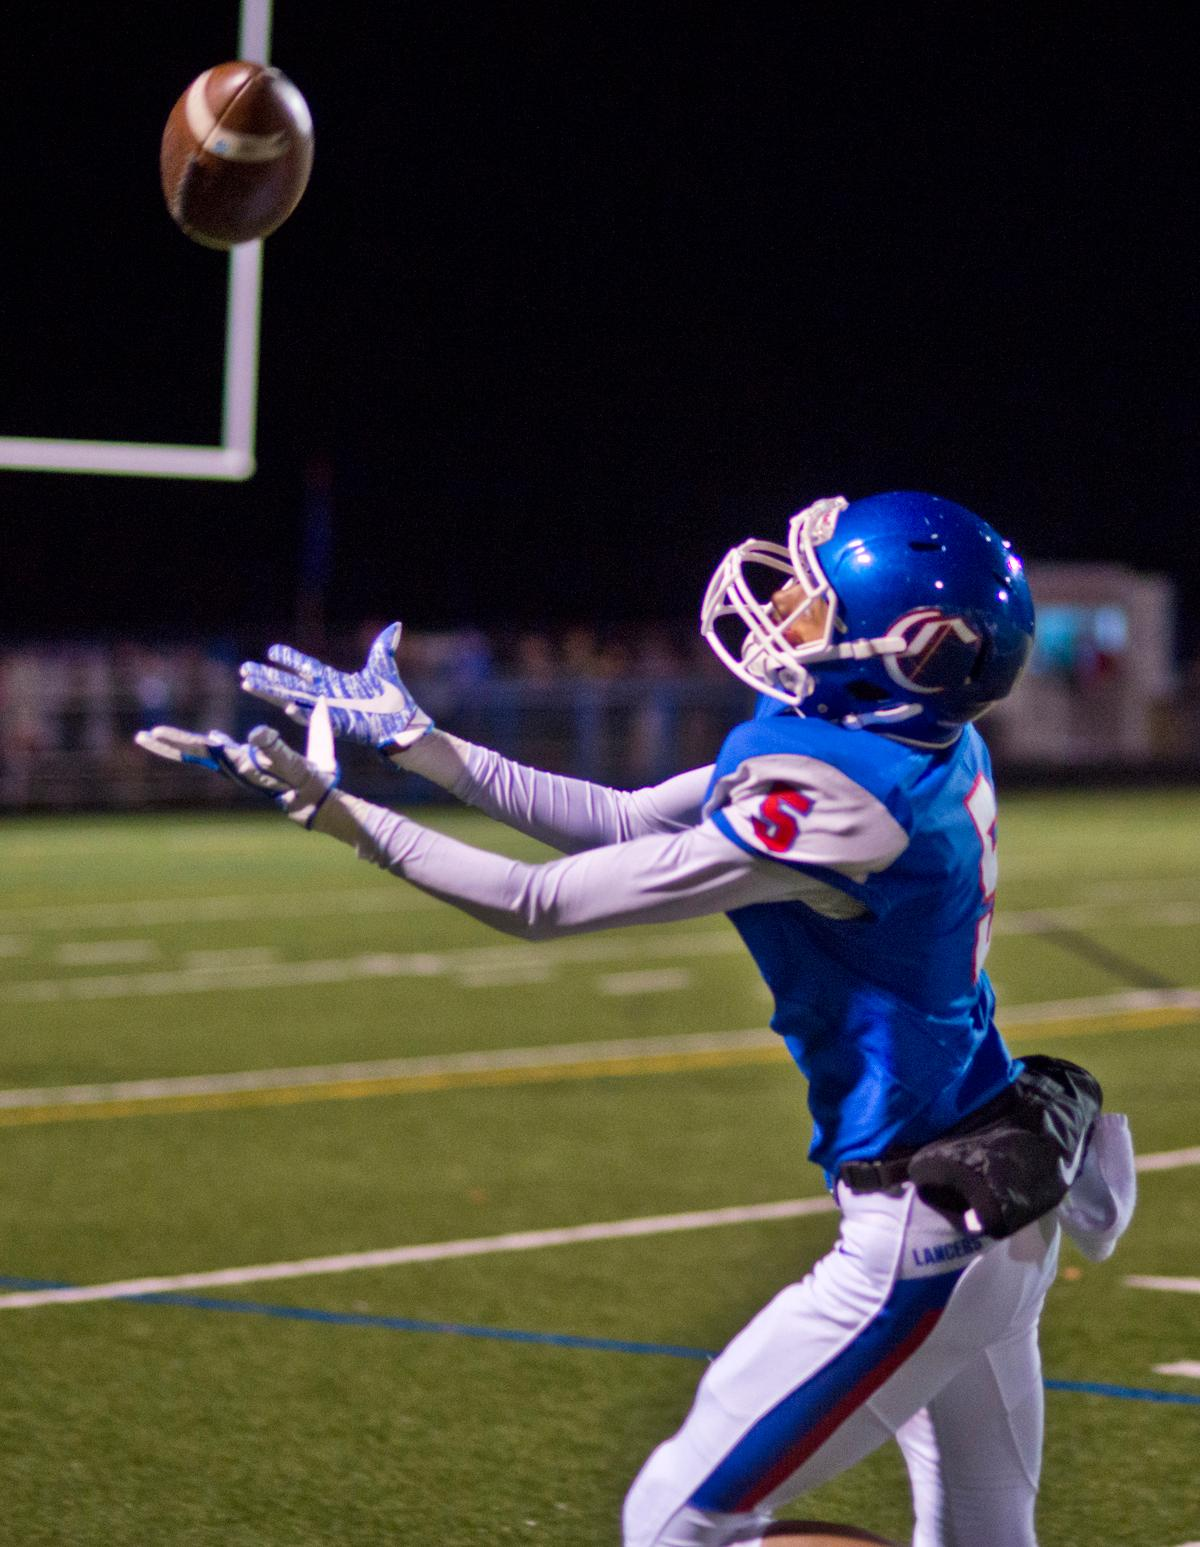 Churchill Lancers wide receiver Marshaun Tucker Jr. (#5) attempts to pull in long pass in the game against the Pendleton Buckeroos. 	The Churchill Lancers defeated the Pendleton Buckaroos 42-15, in the first round of the state 5A playoffs. Photo by Dan Morrison, Oregon News Lab